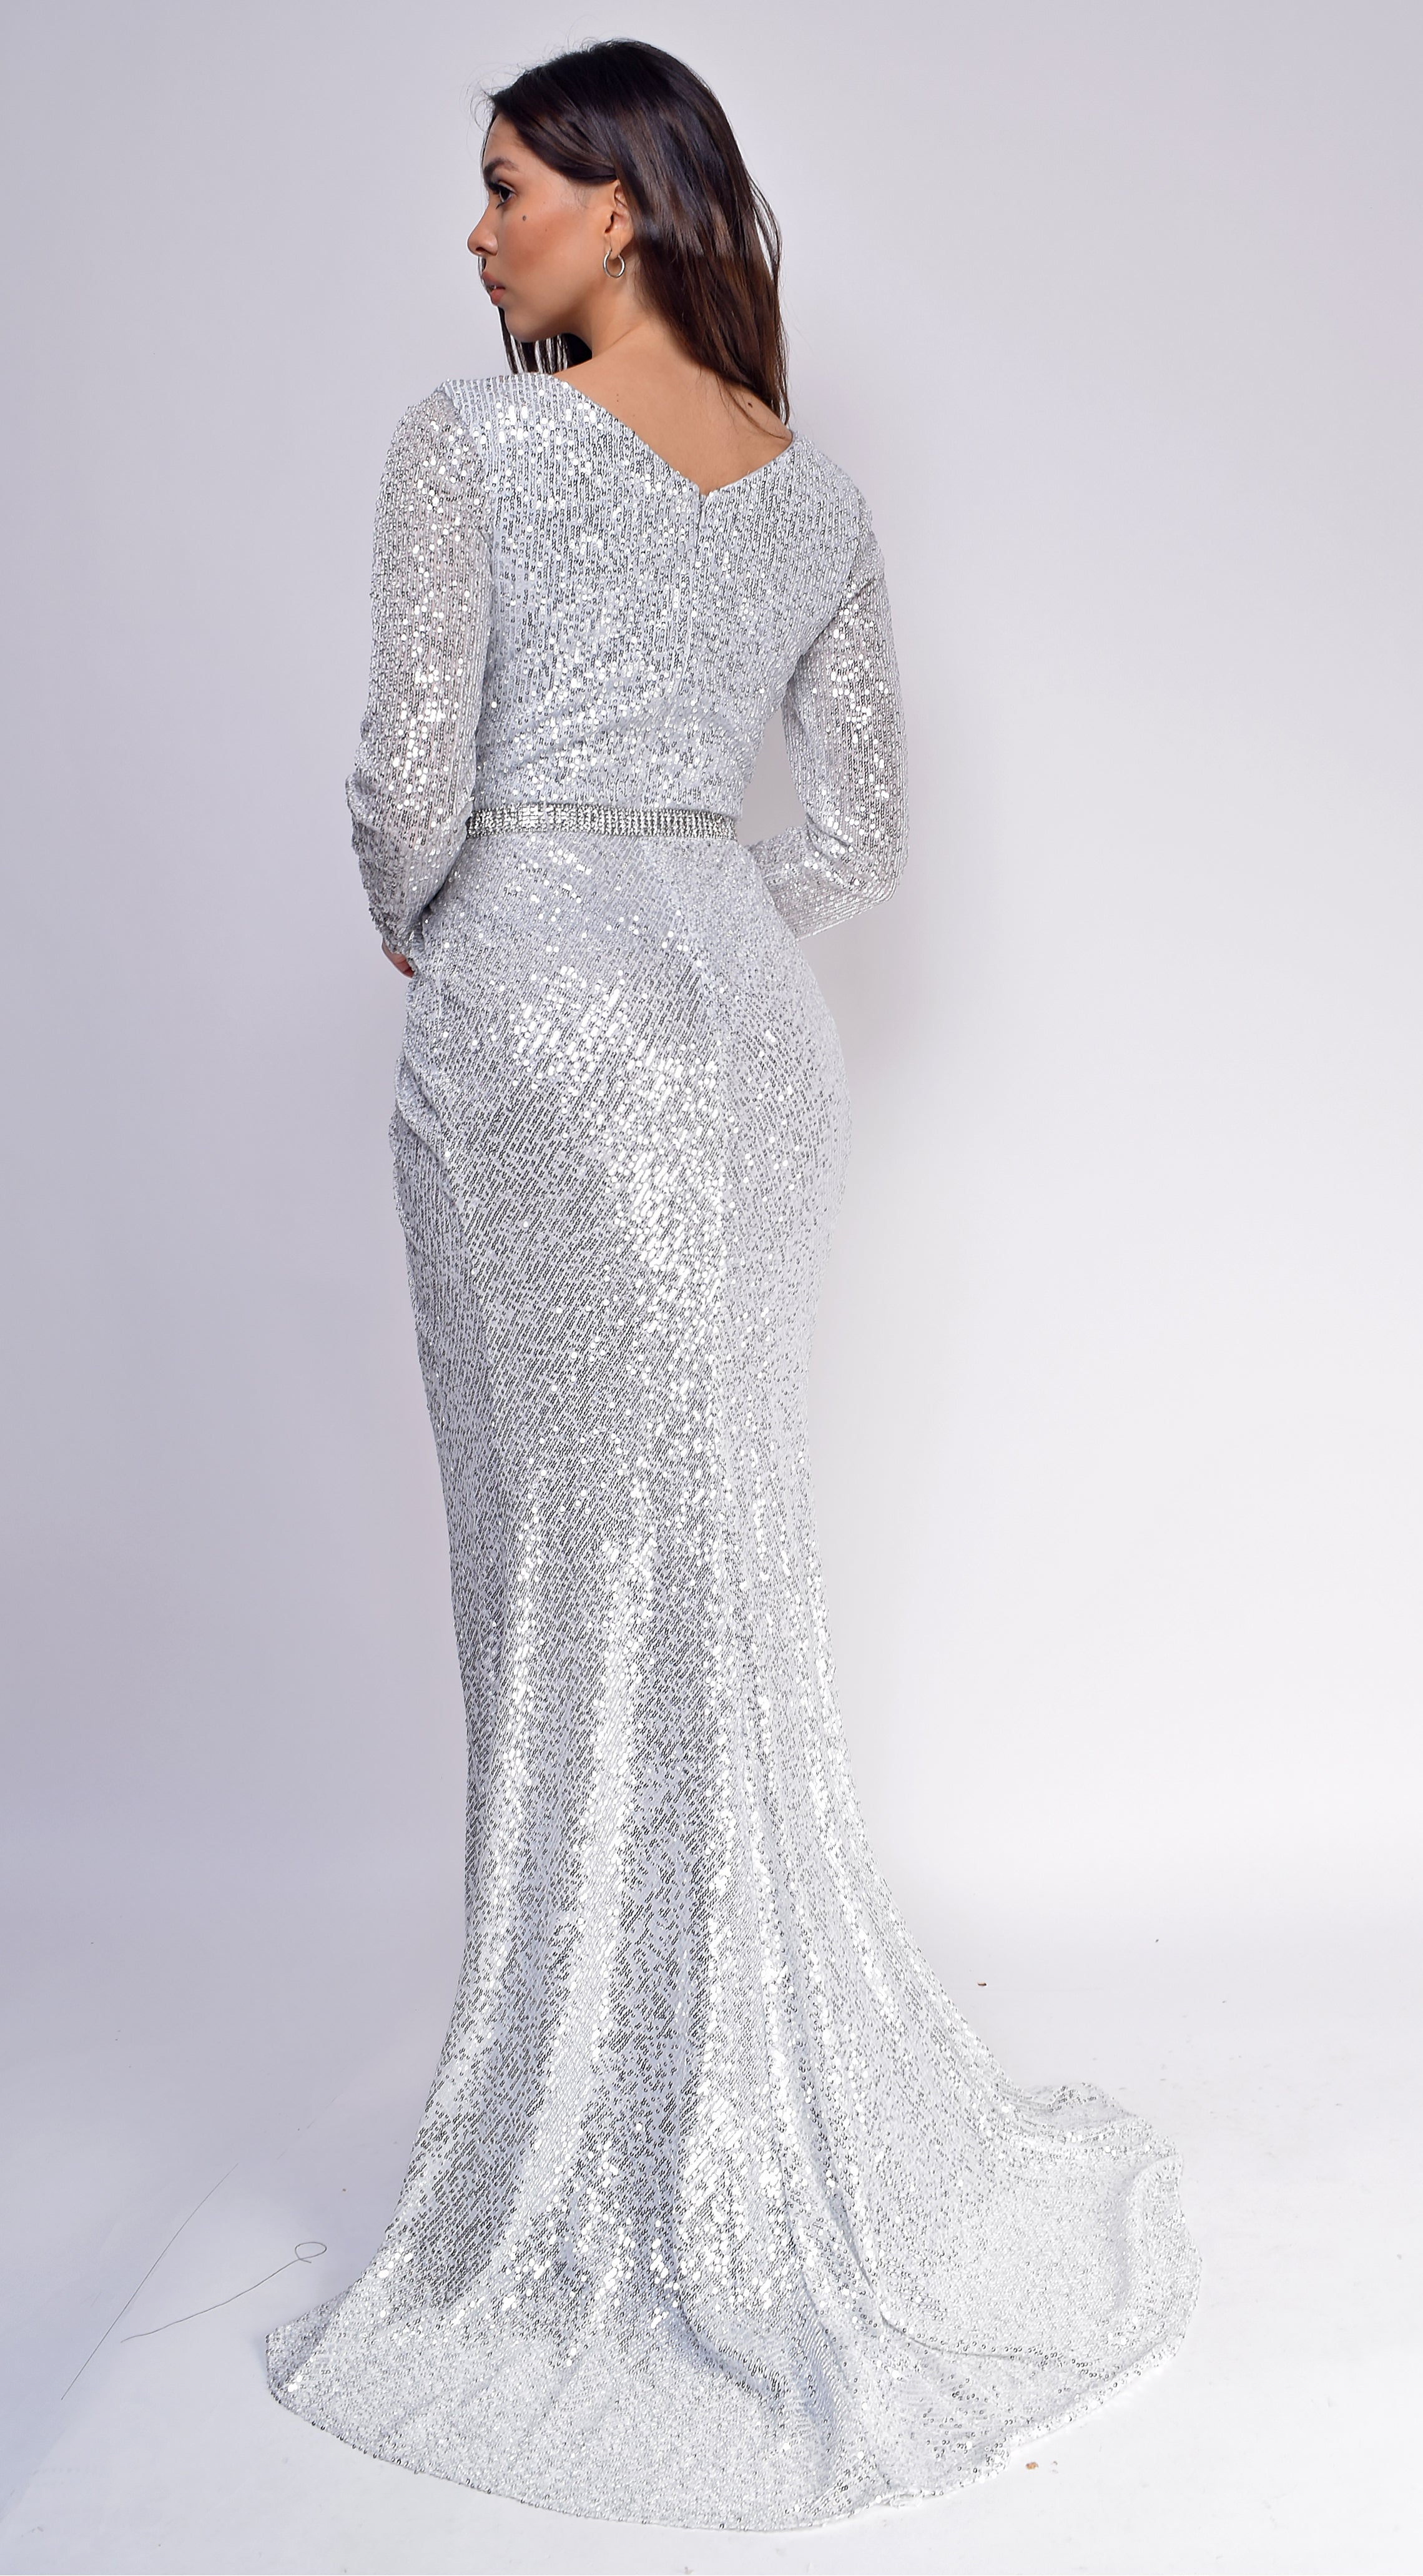 Remy Silver Long Sleeve Sequin Jewel Belted Gown